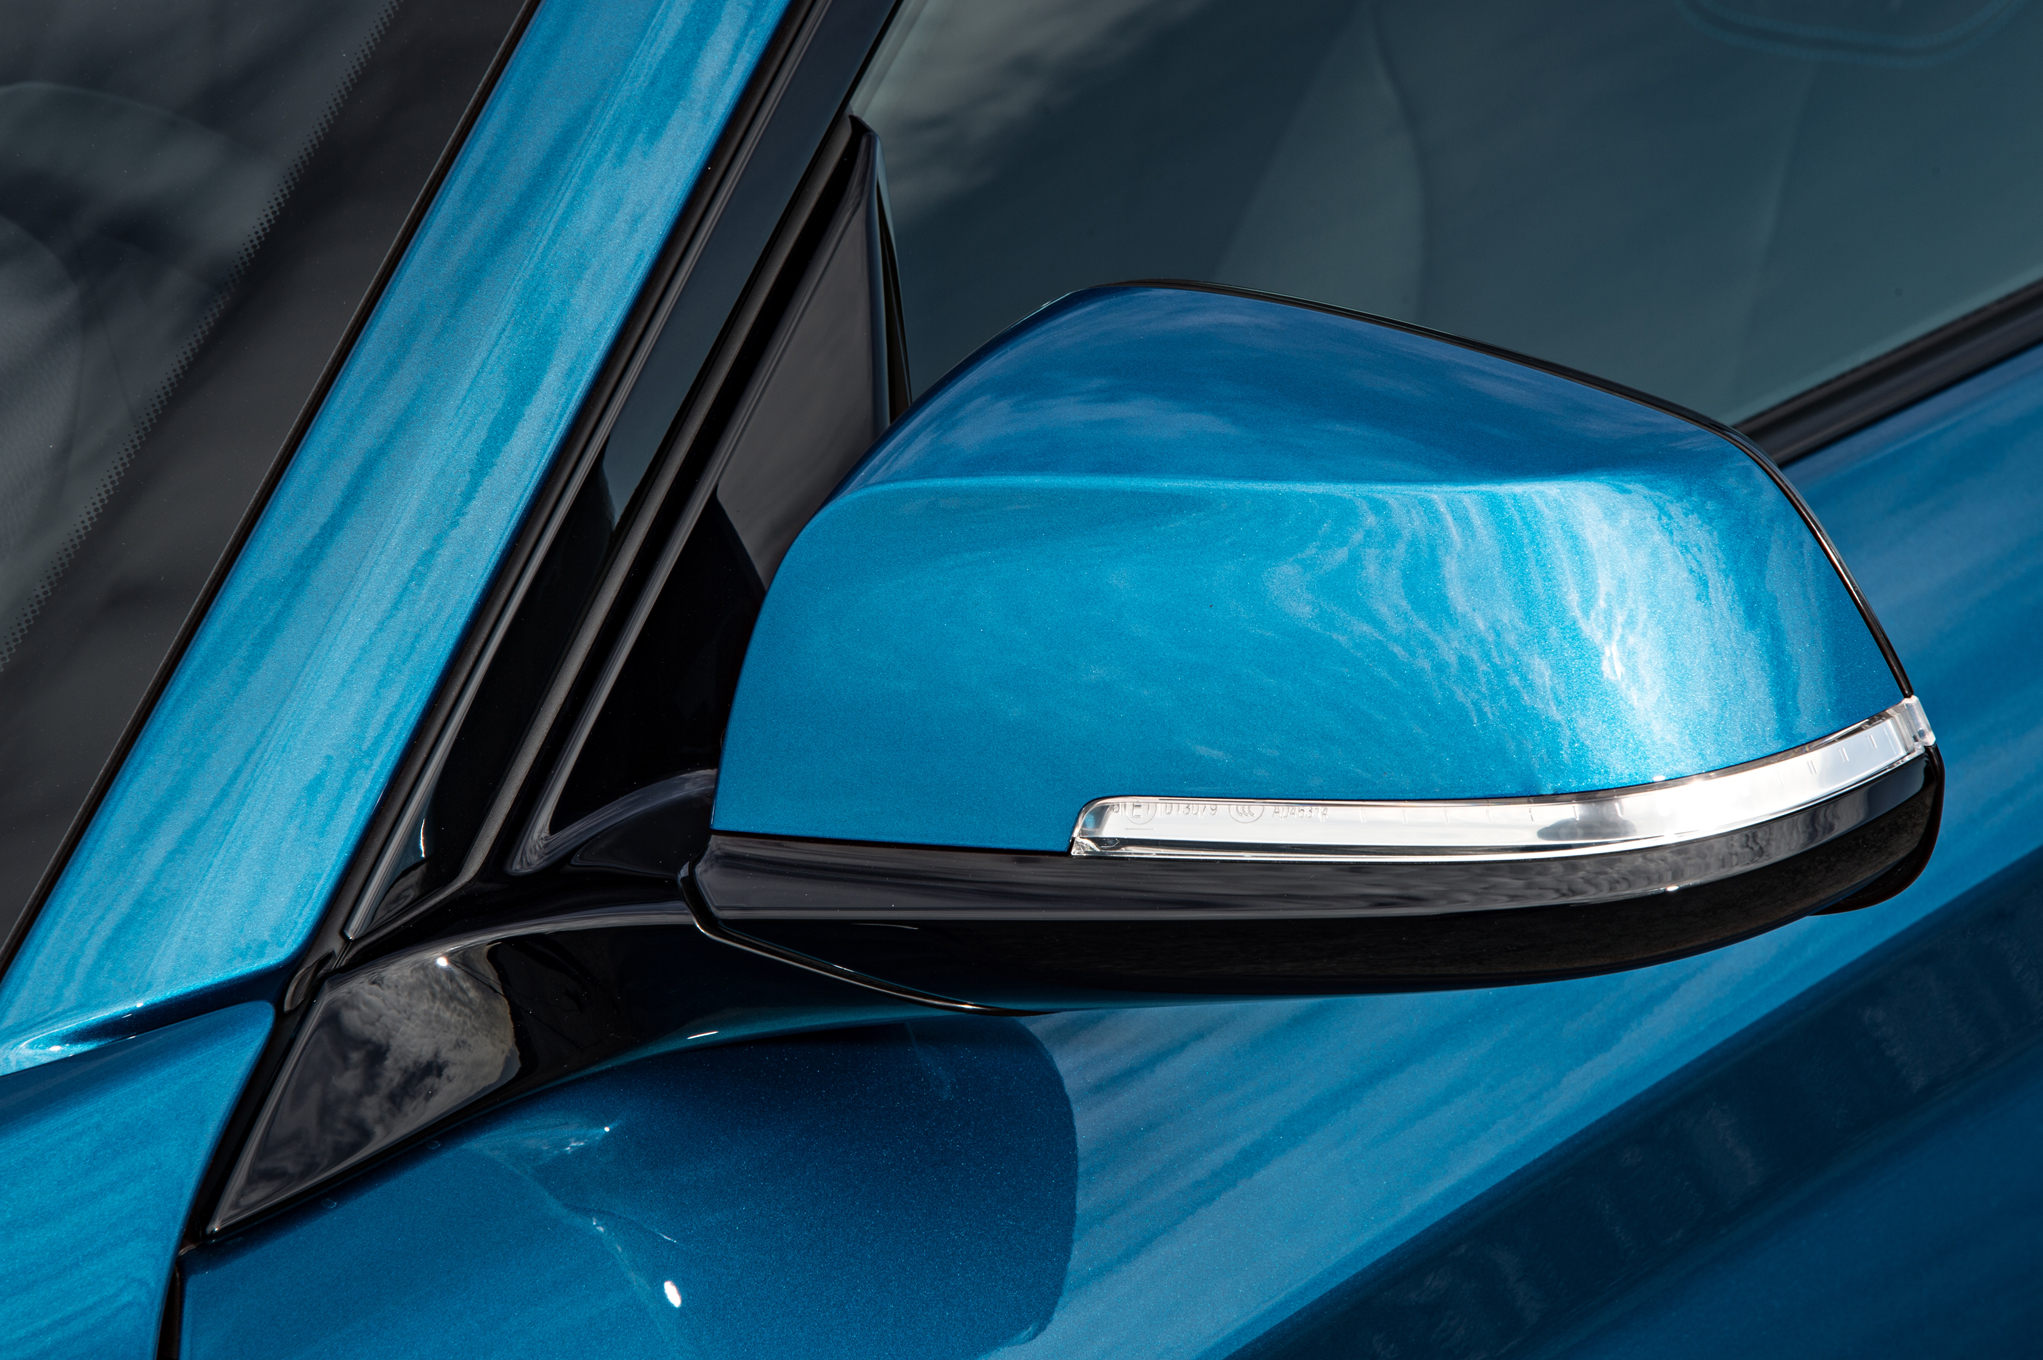 2016 BMW M2 Exterior View Side Mirror (Photo 34 of 61)